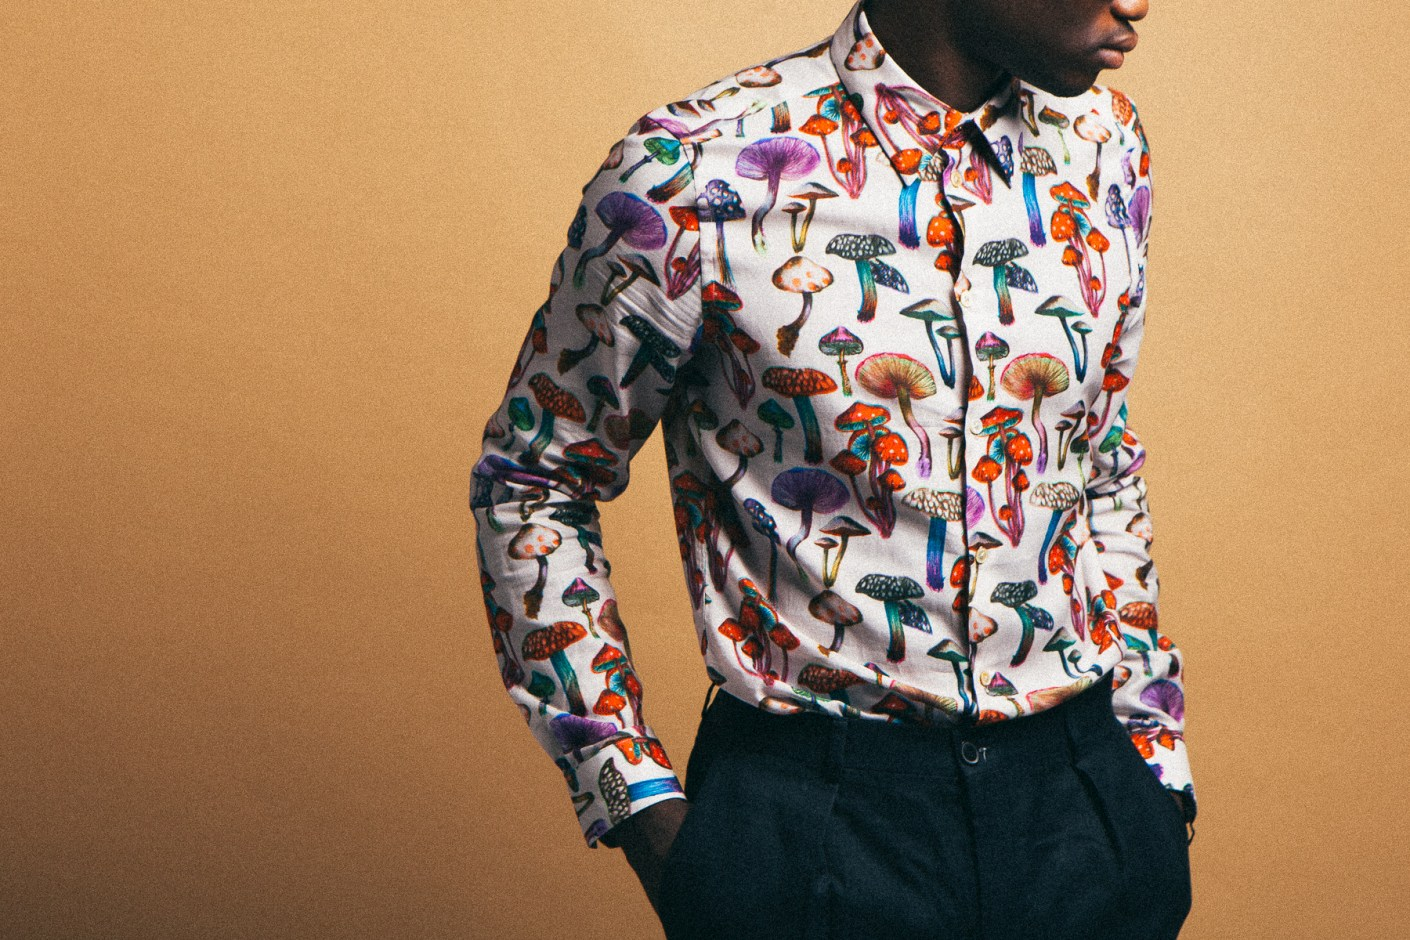 Image of Paul Smith 2014 Spring/Summer Collection